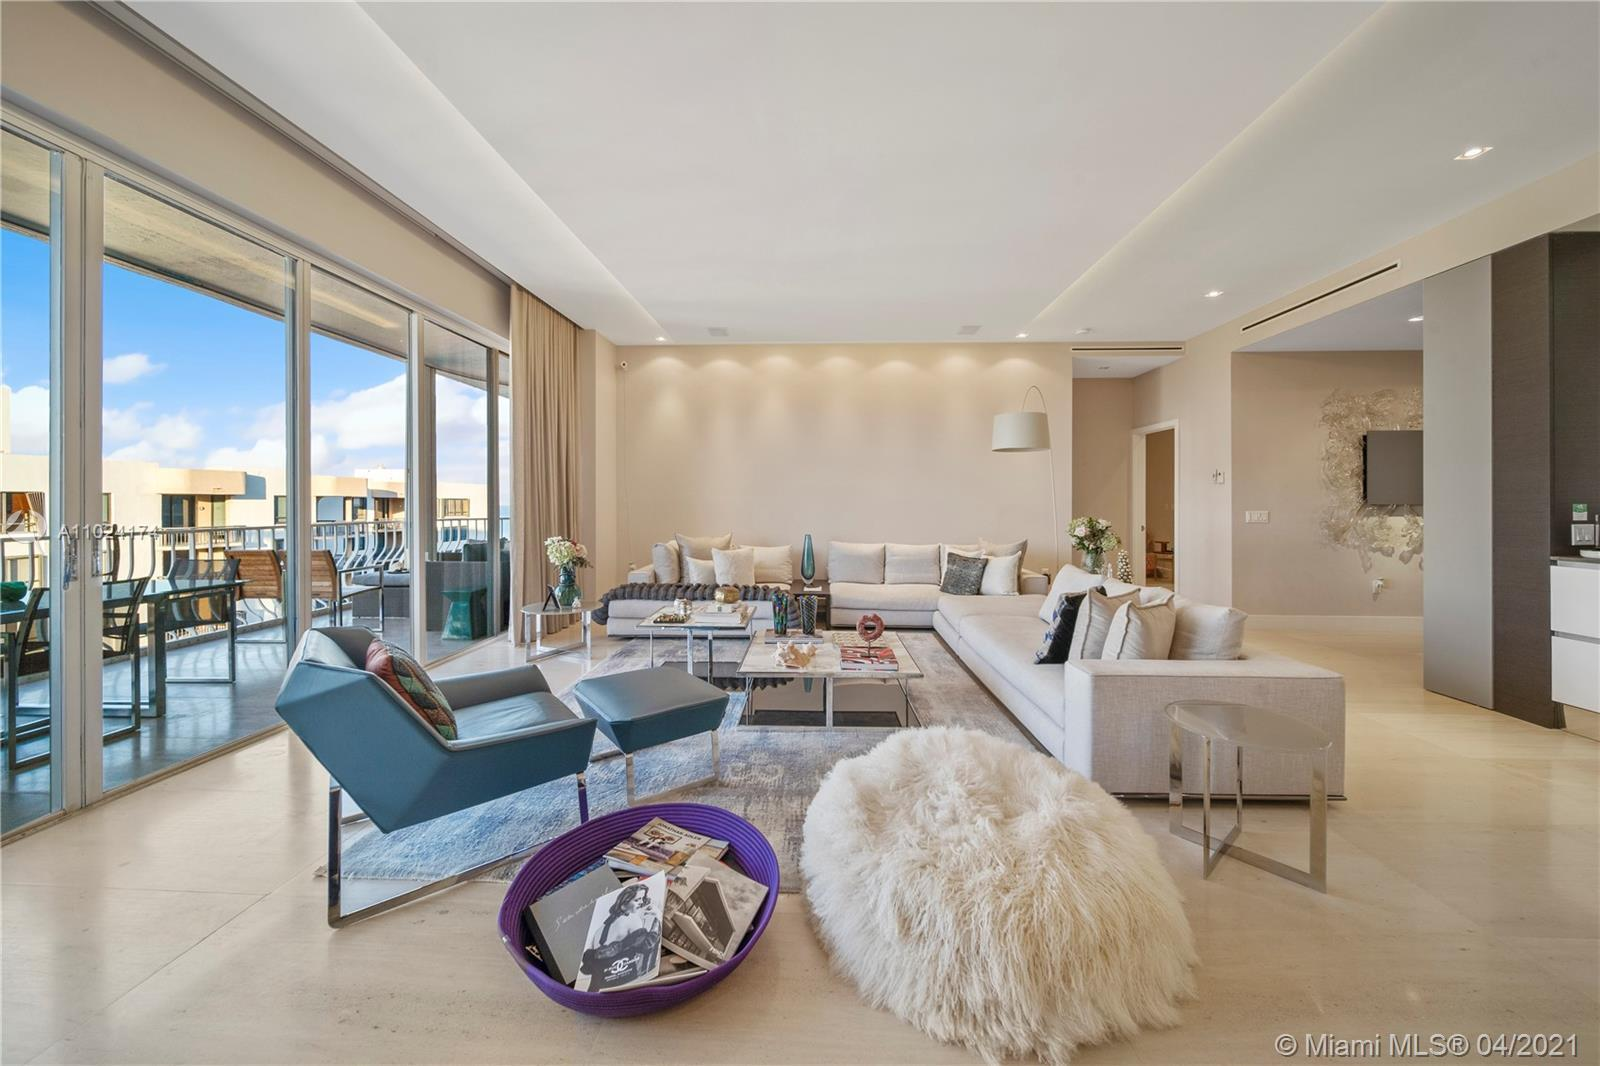 ABOUT THIS ONE OF A KIND L-PH unit. With spectacular horizons from ocean to Intracoastal views, this